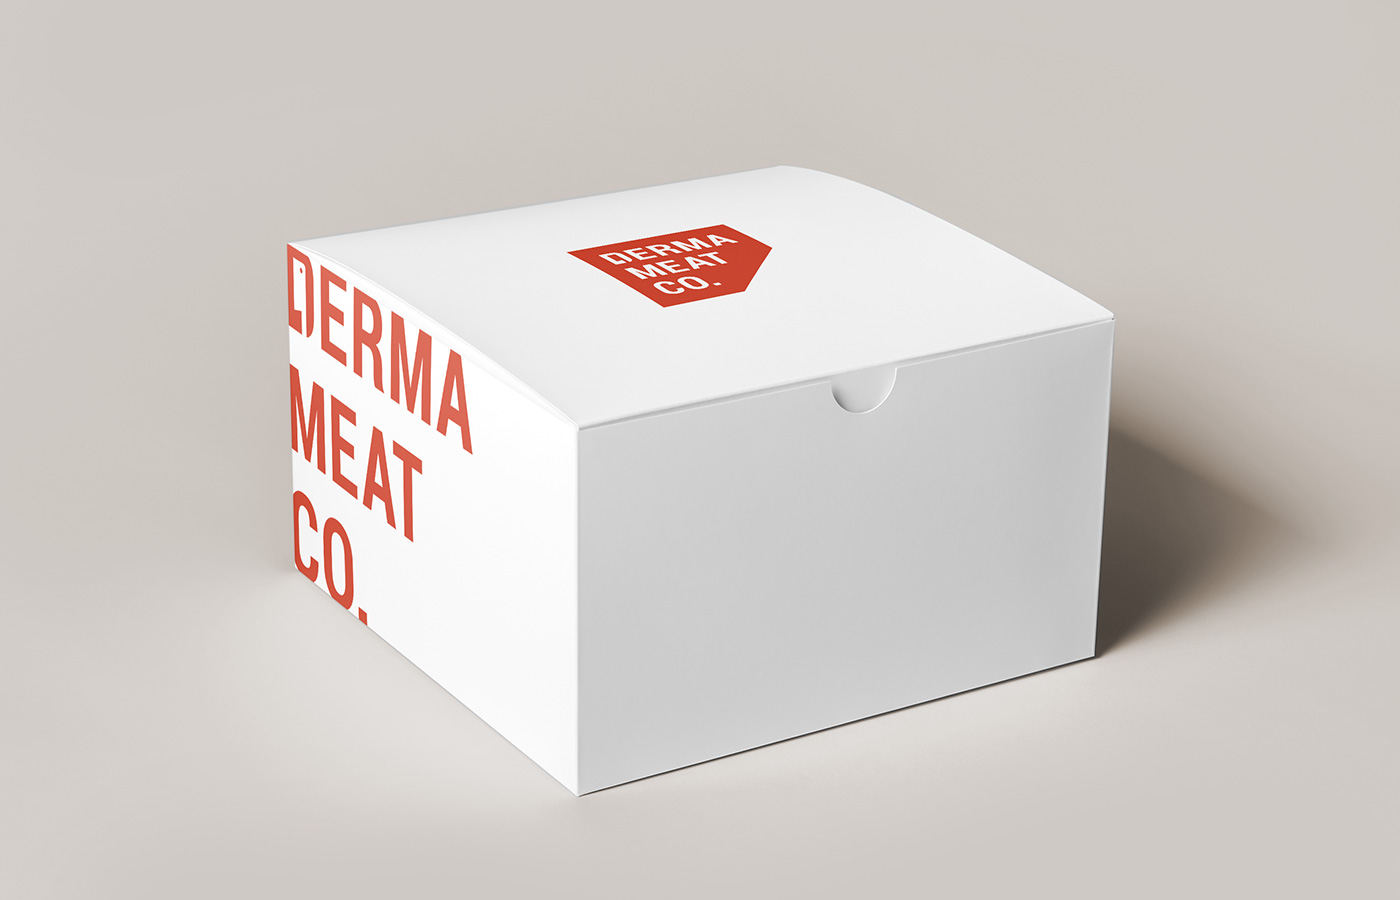 covetdesign_logo-design_branding_package-design_graphic-design_vancouver_work_wide_derma-box-side